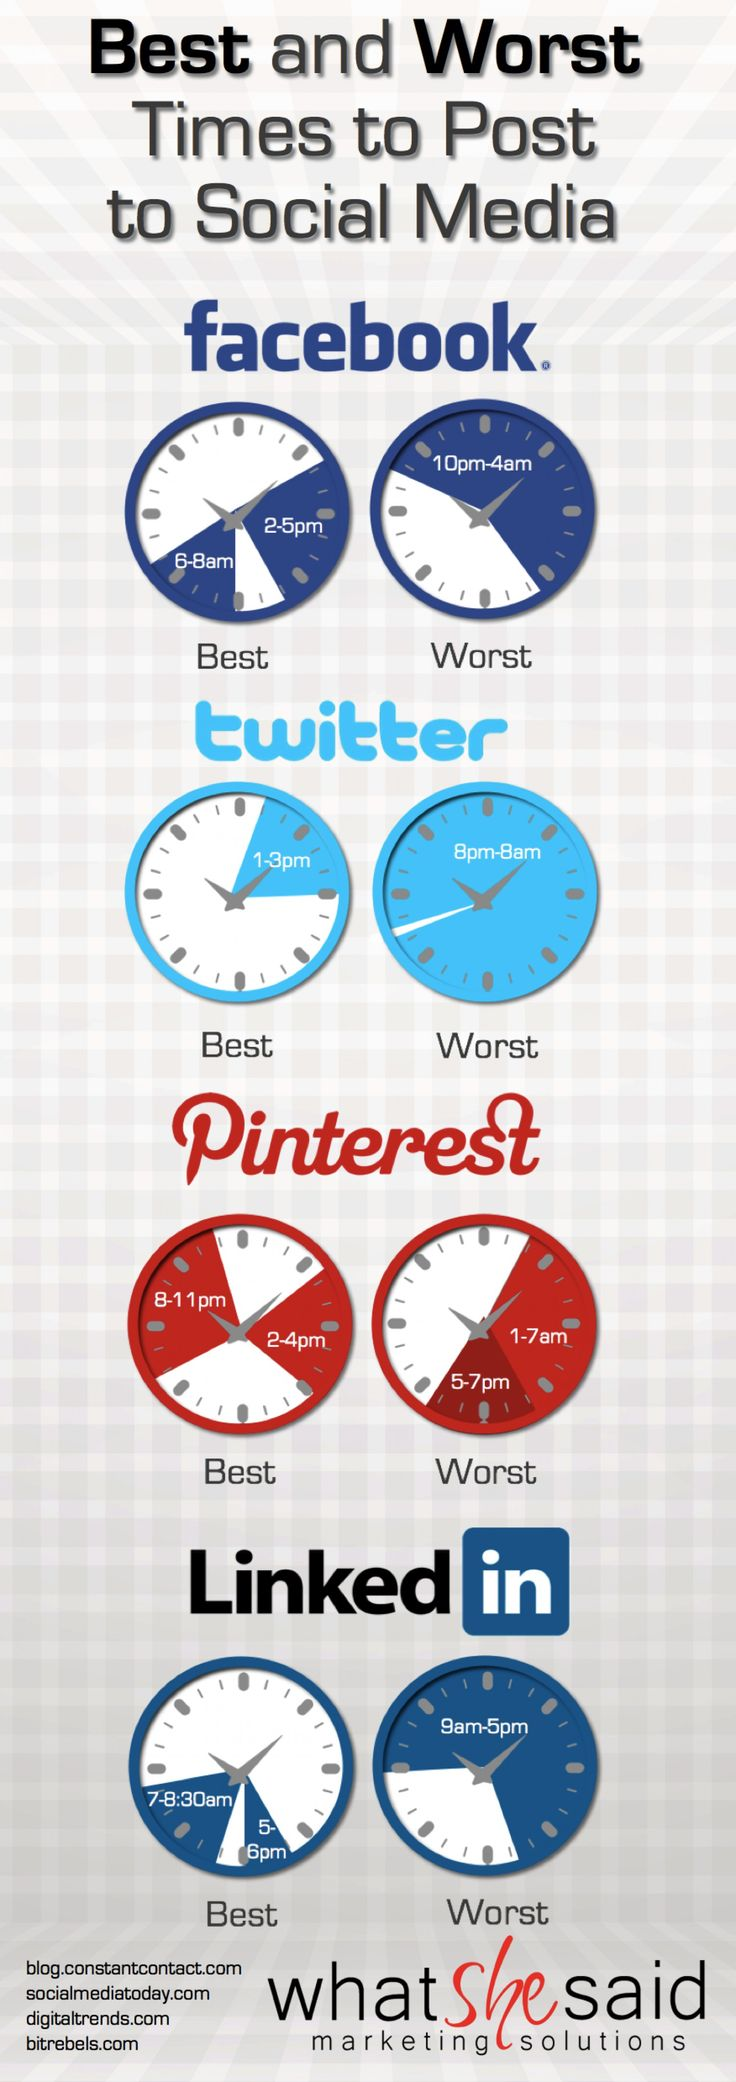 If you're posting on social media, you may as well do it the smart way! Check out the Best and Worst Times to Post on Social Media to make sure you have maximum reach. #blogging #social